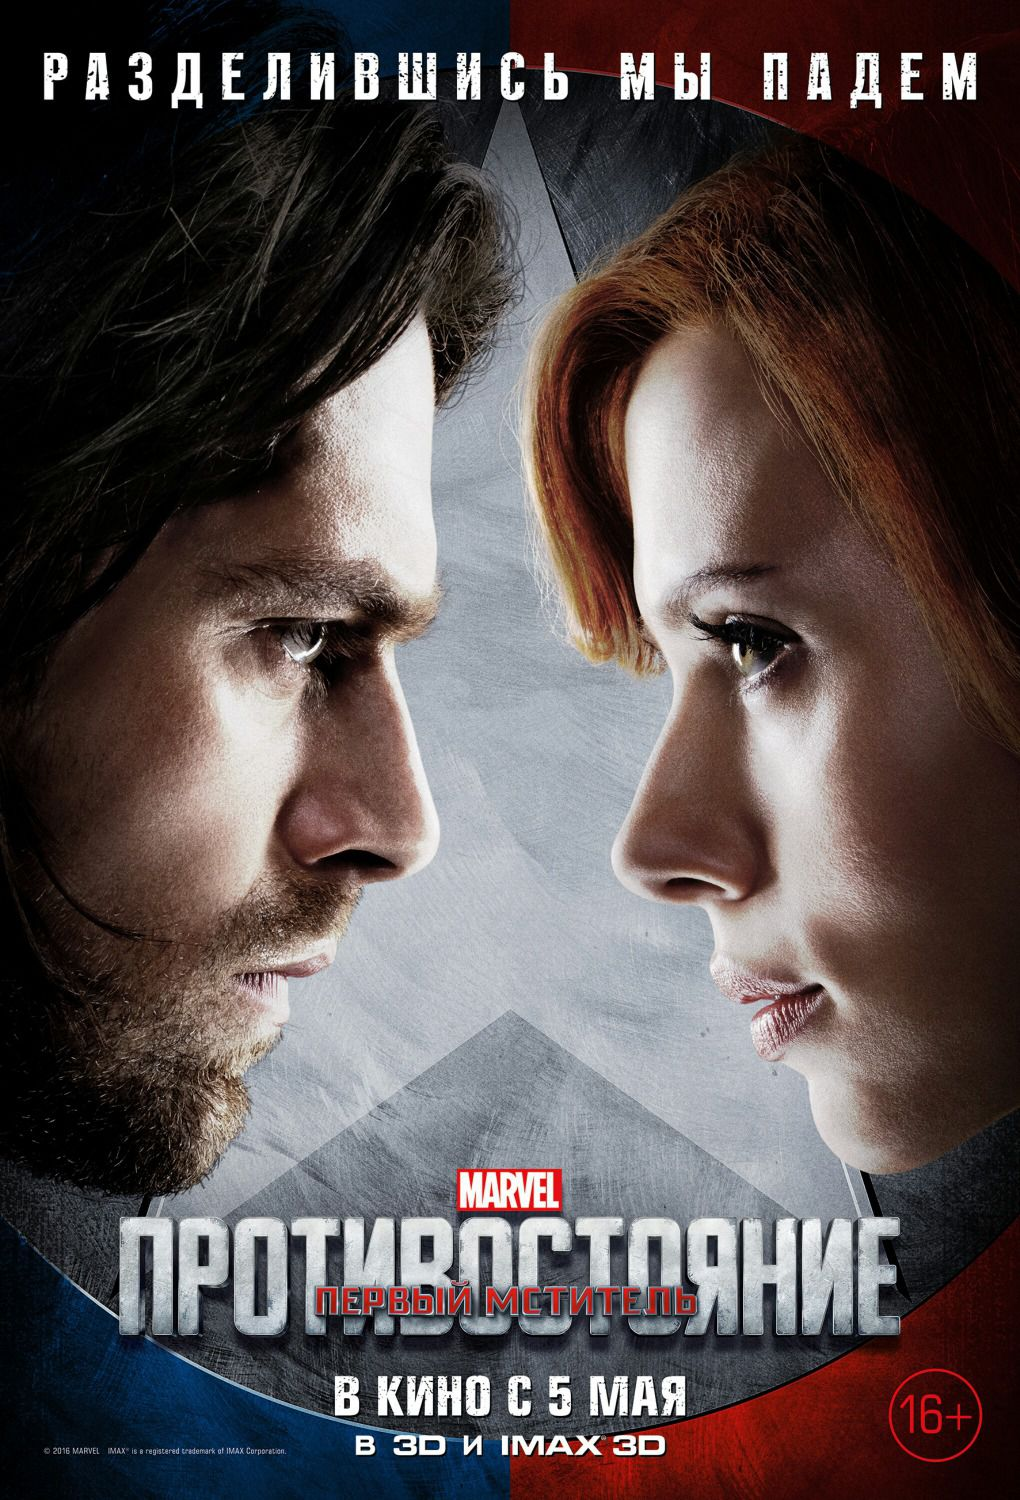 Captain America 3 - Civil War - Capitan America - Winter Soldier vs Black Widow